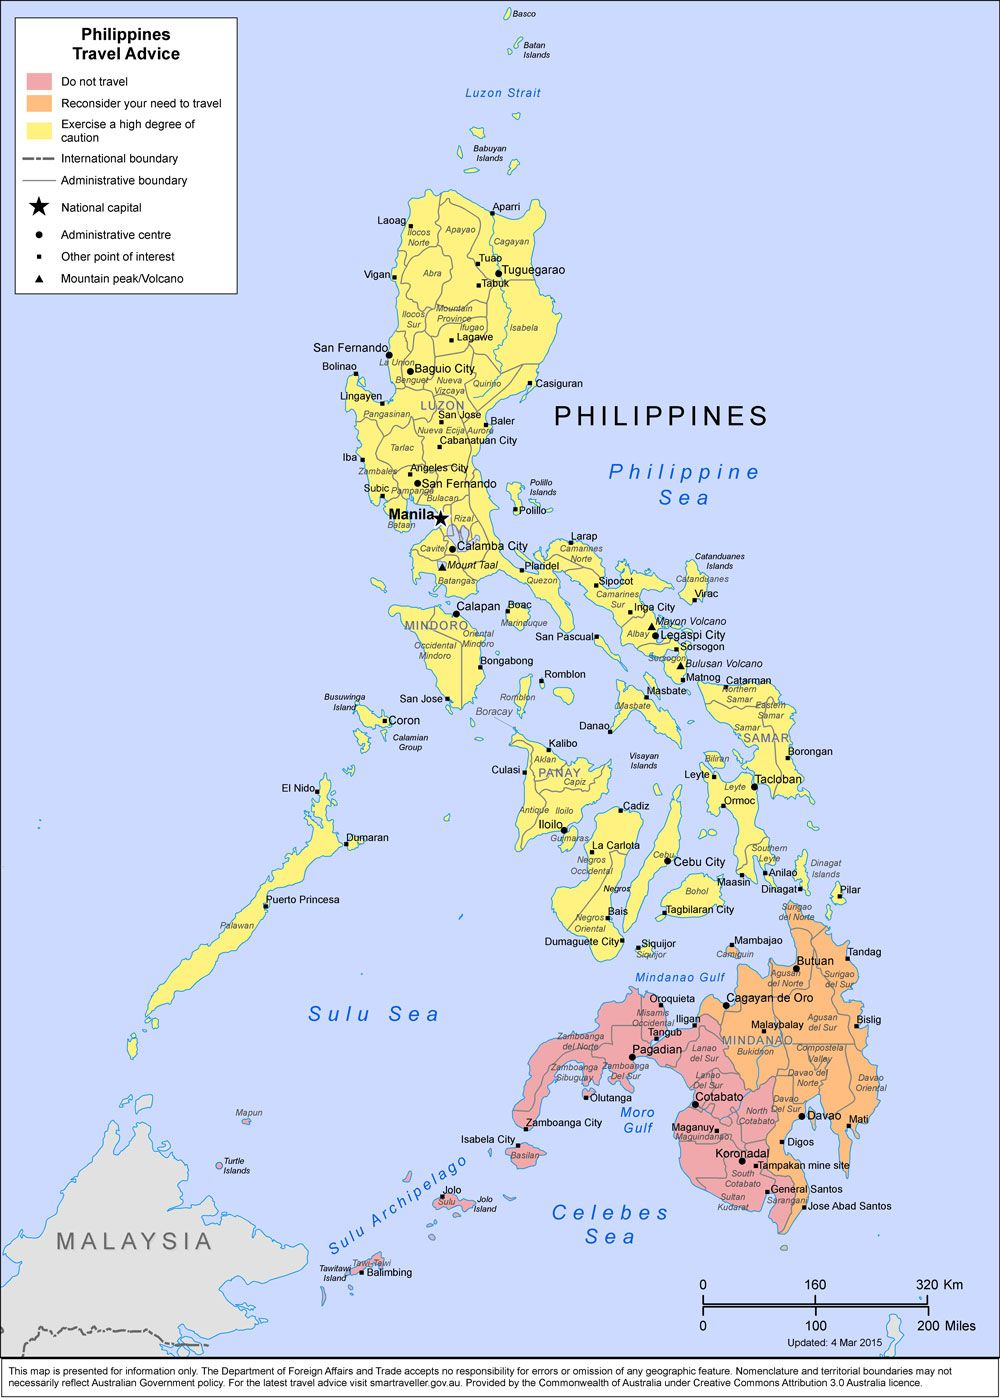 Philippines Travel advice Smartraveller The